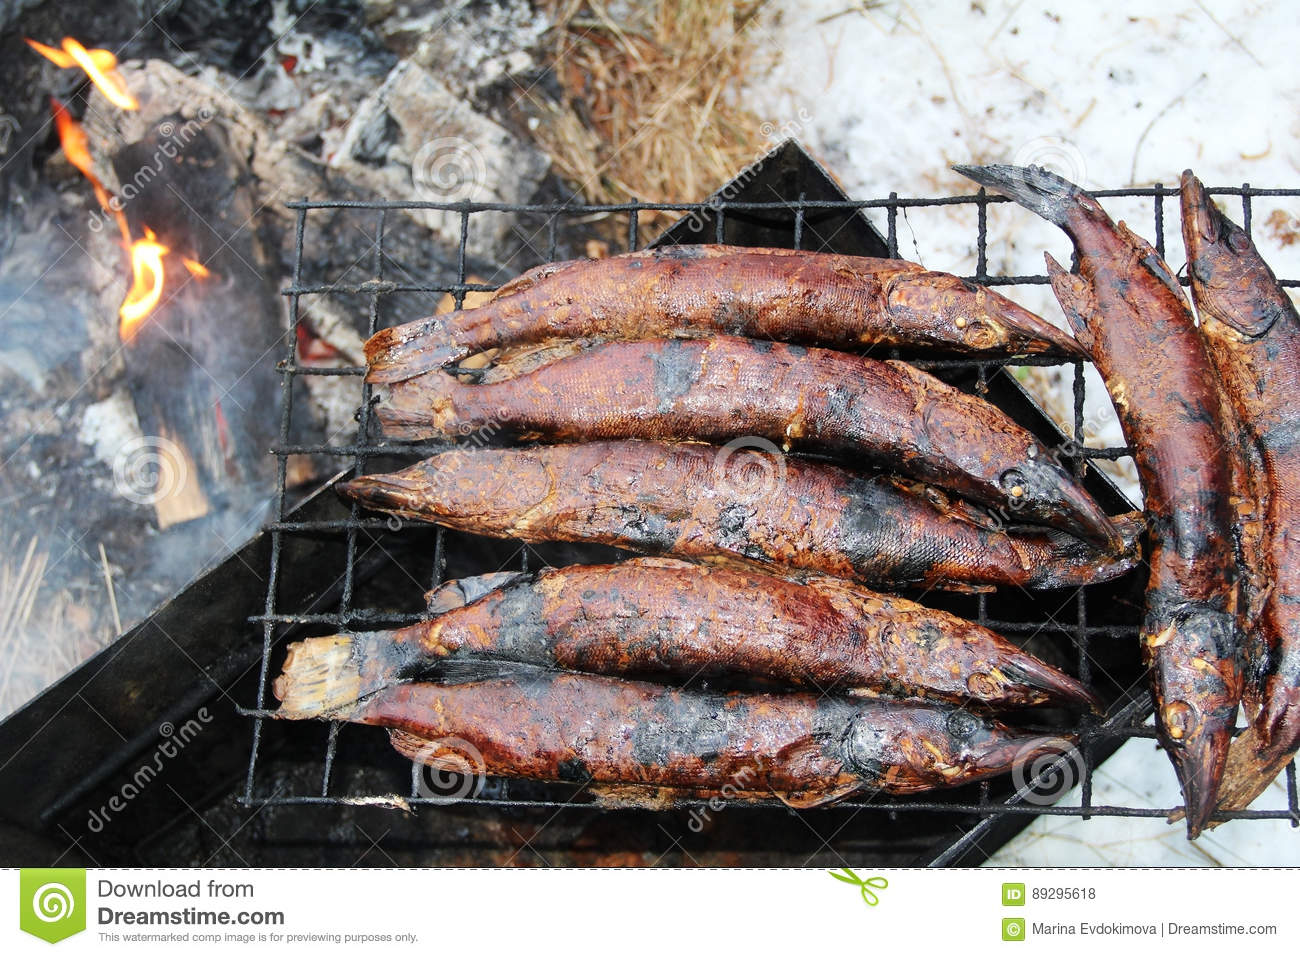 How to smoke fish in smokehouse What can smoke fish 25